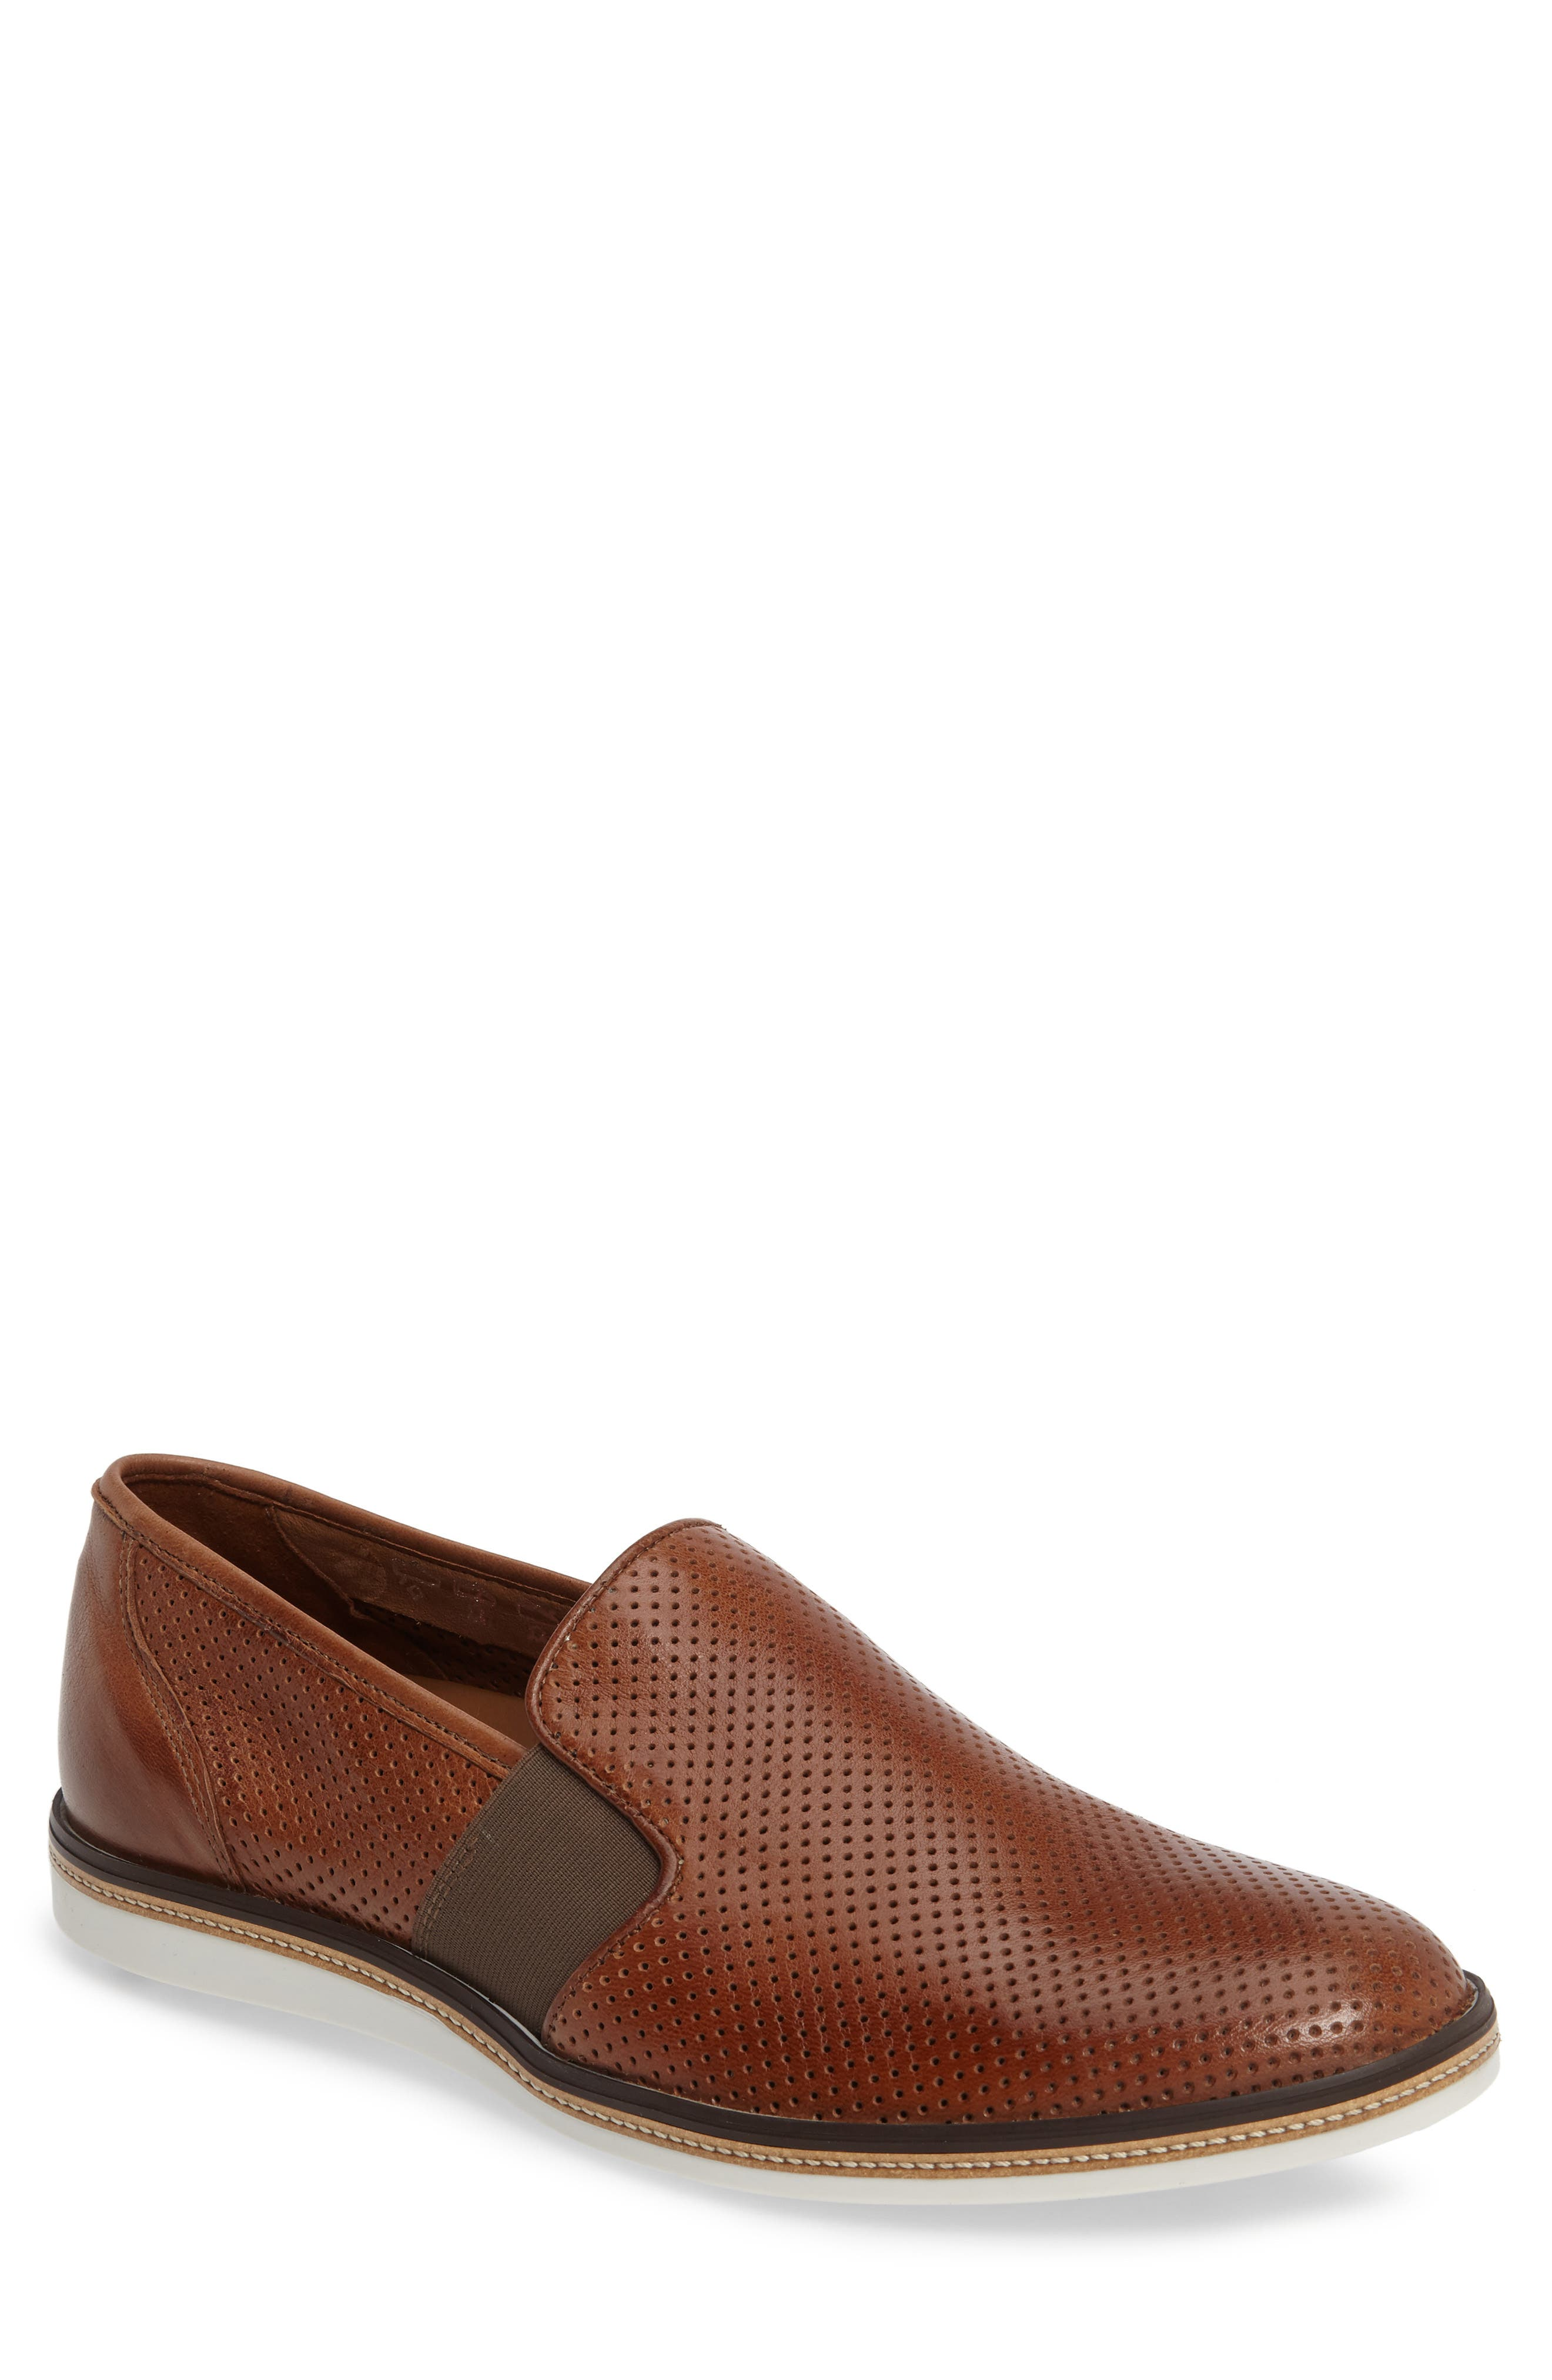 Main Image - Lloyd Alister Perforated Loafer (Men)